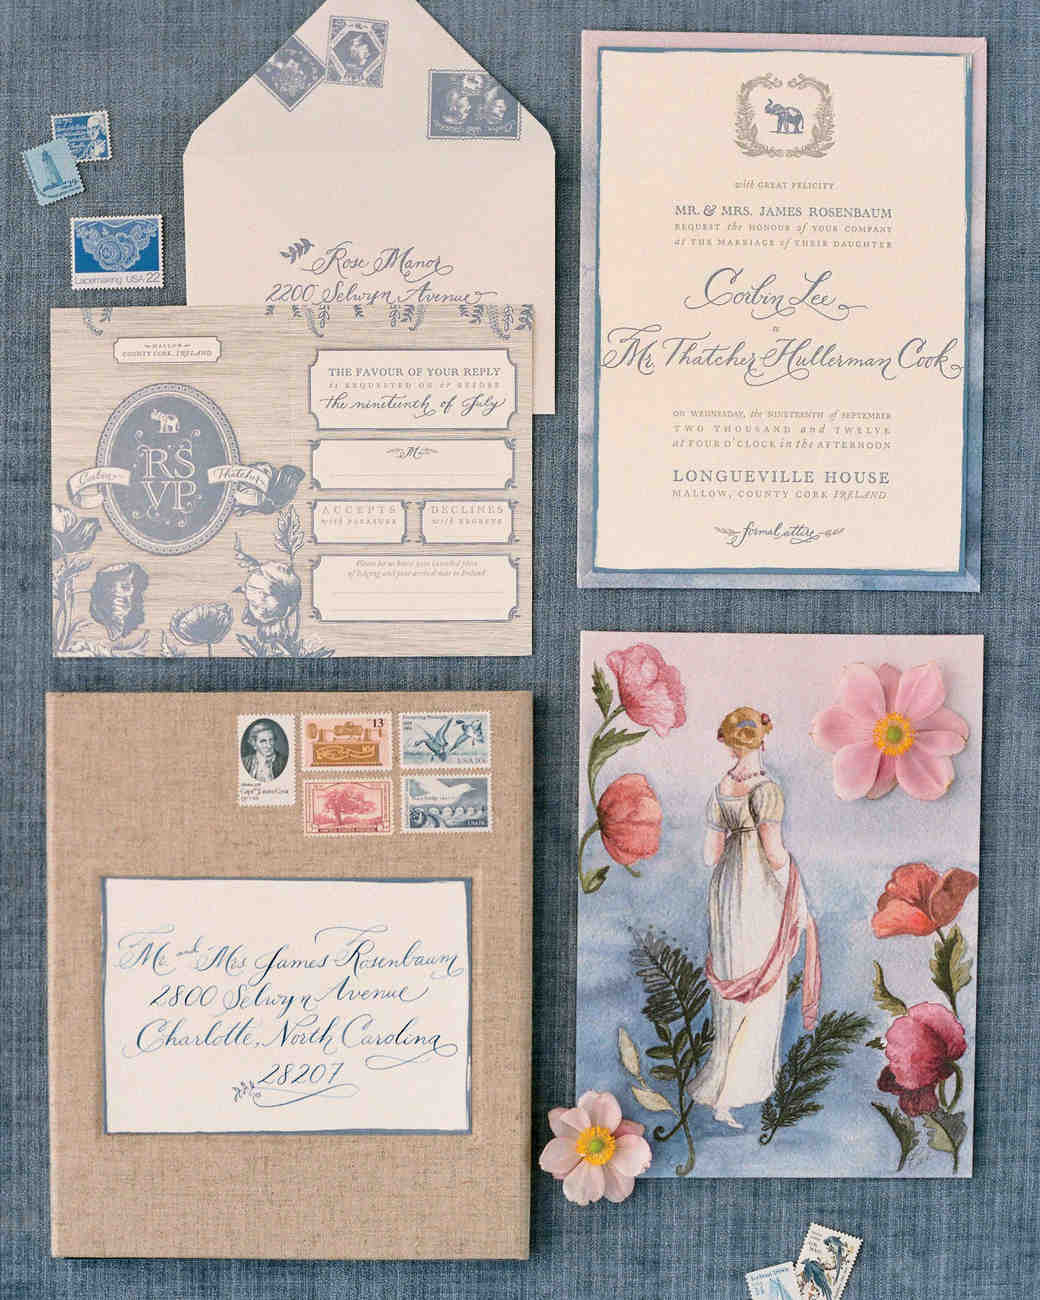 corbin-thatcher-invitations-1001-mwds109911.jpg